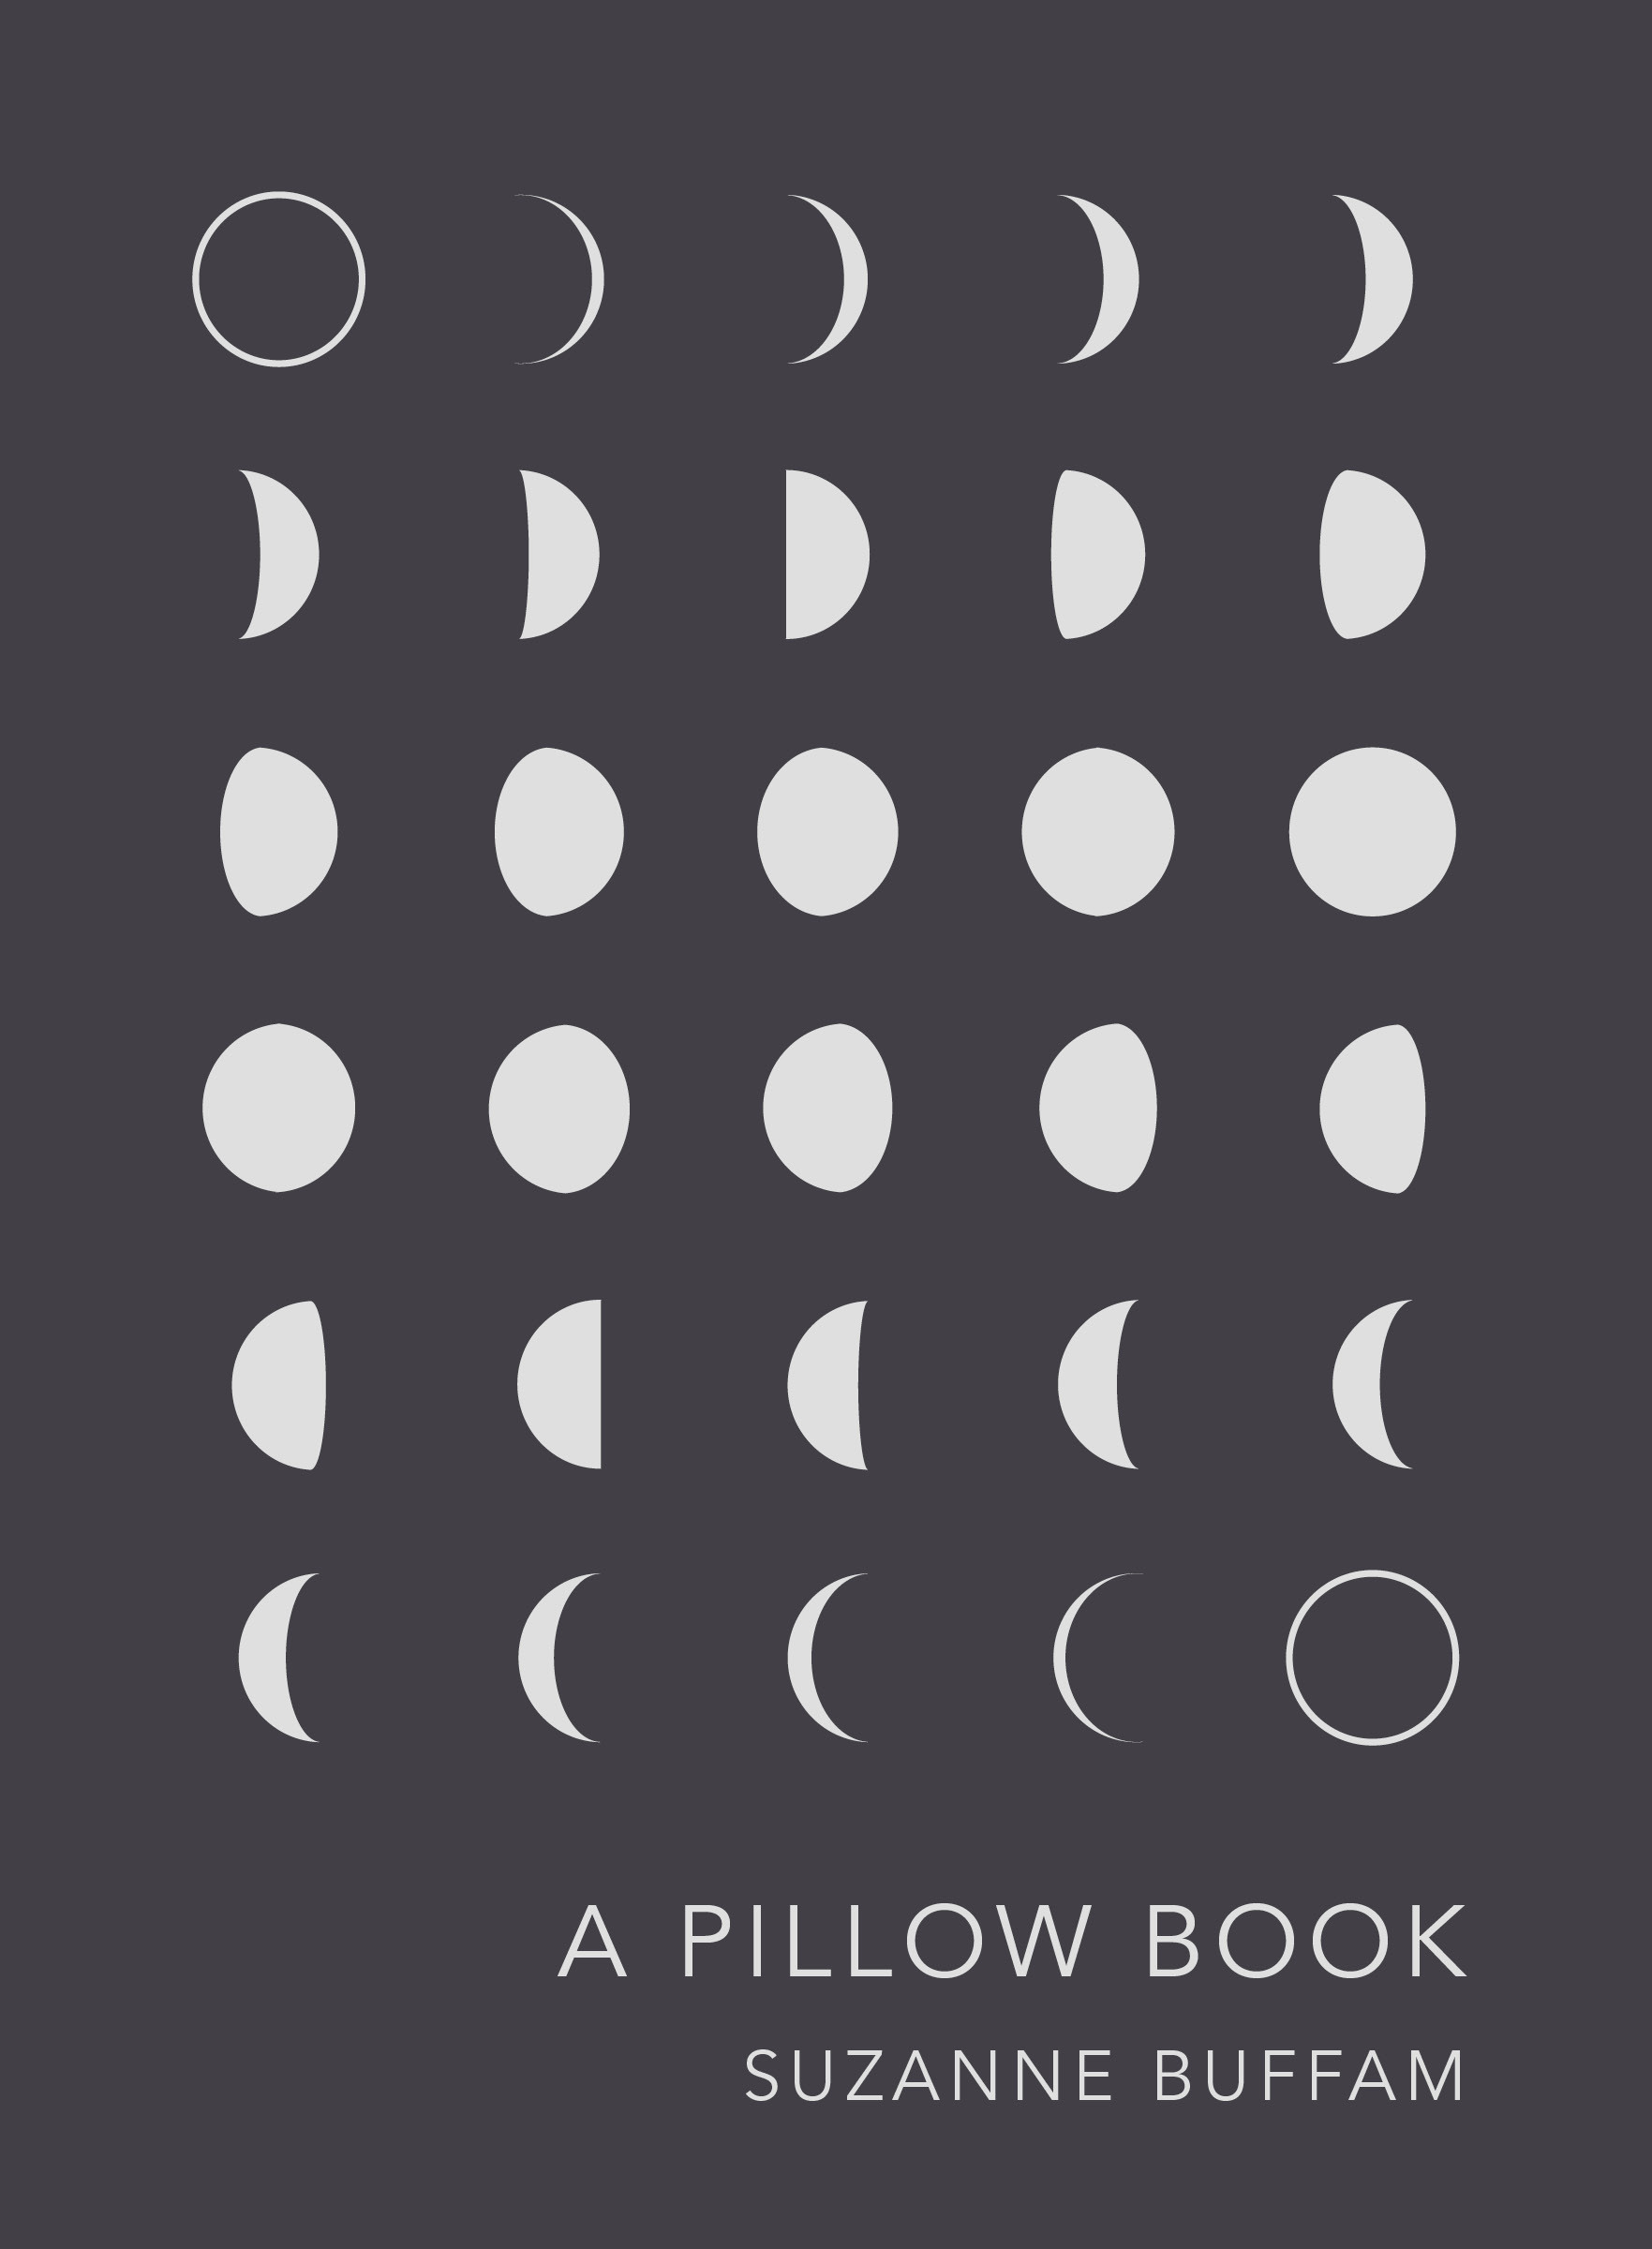 A Pillow Book by Suzanne Buffam